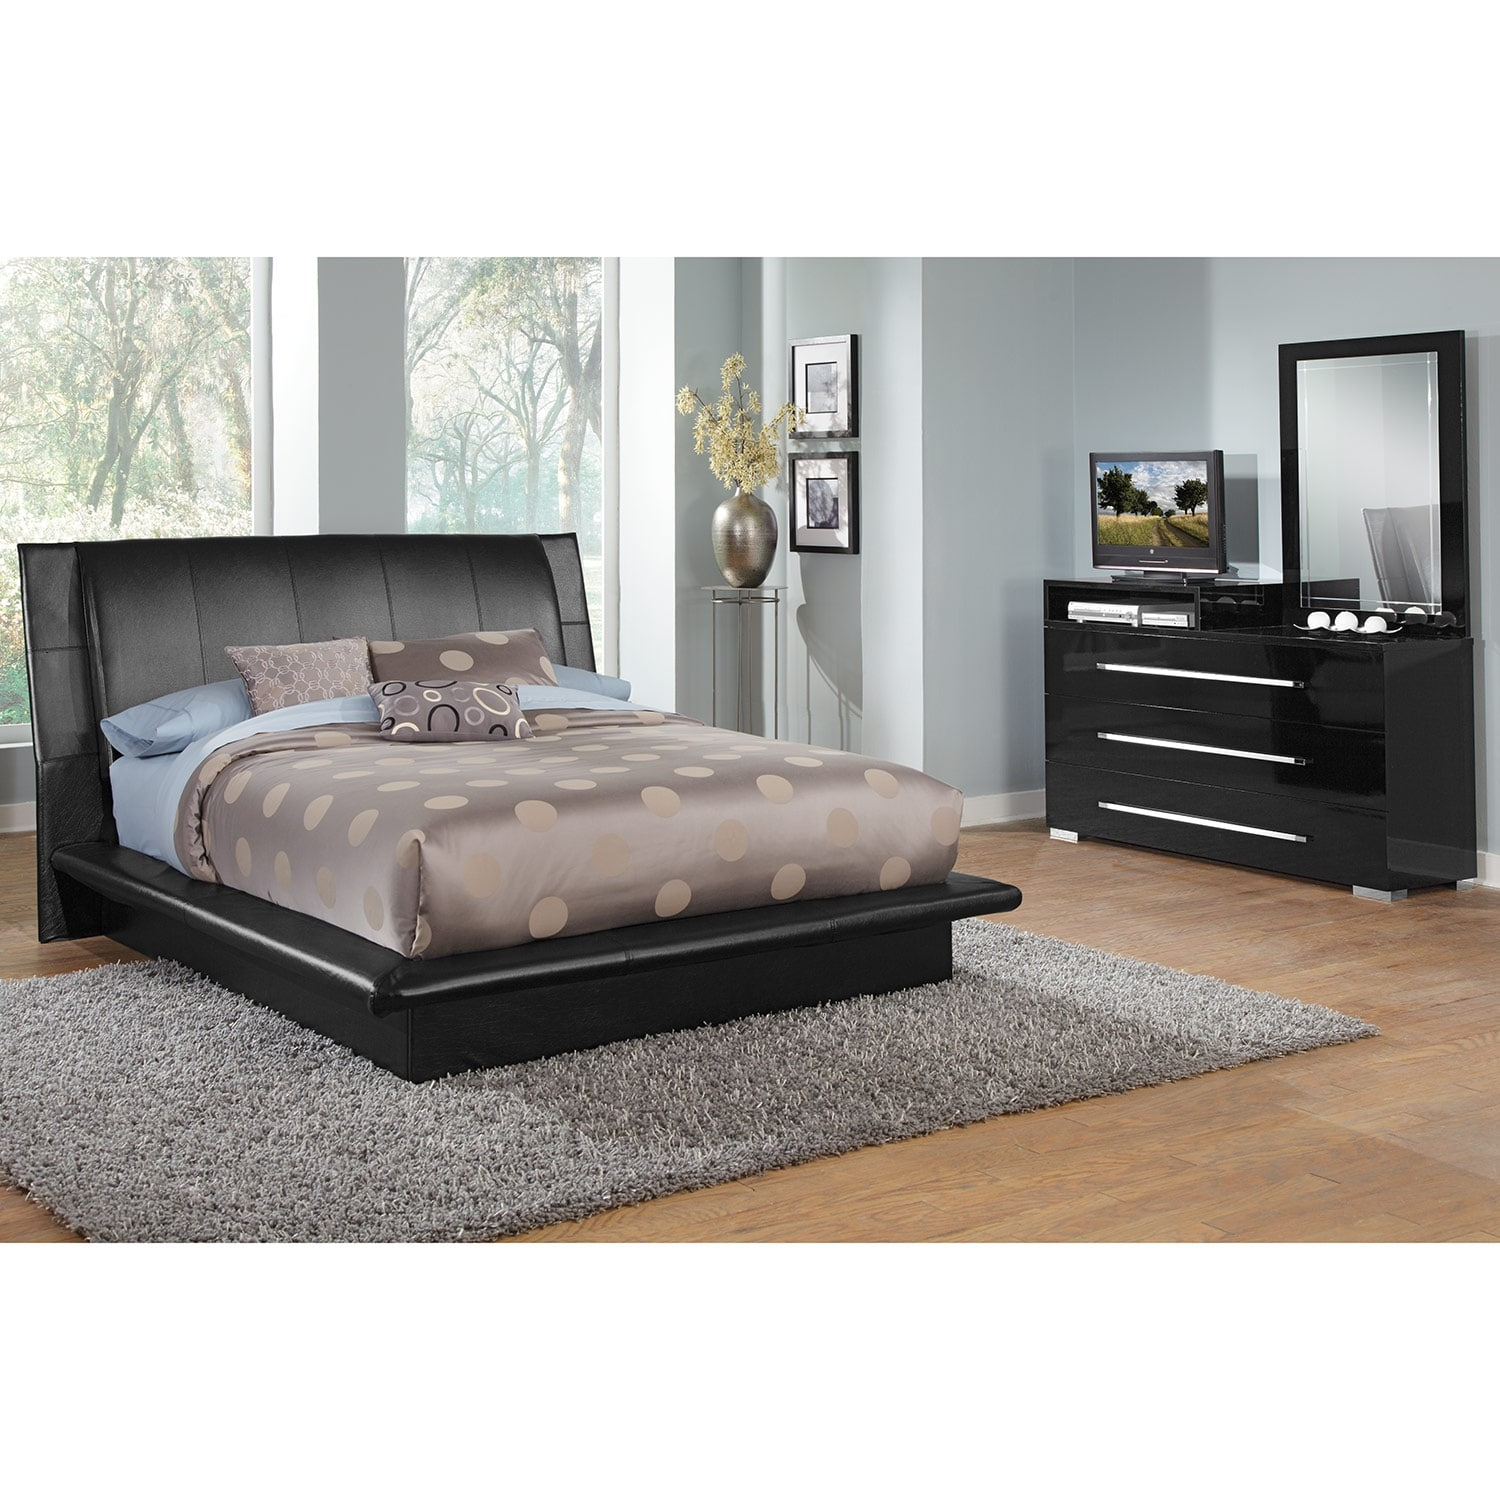 Dimora black 5 pc queen bedroom value city furniture for Furniture bedroom furniture